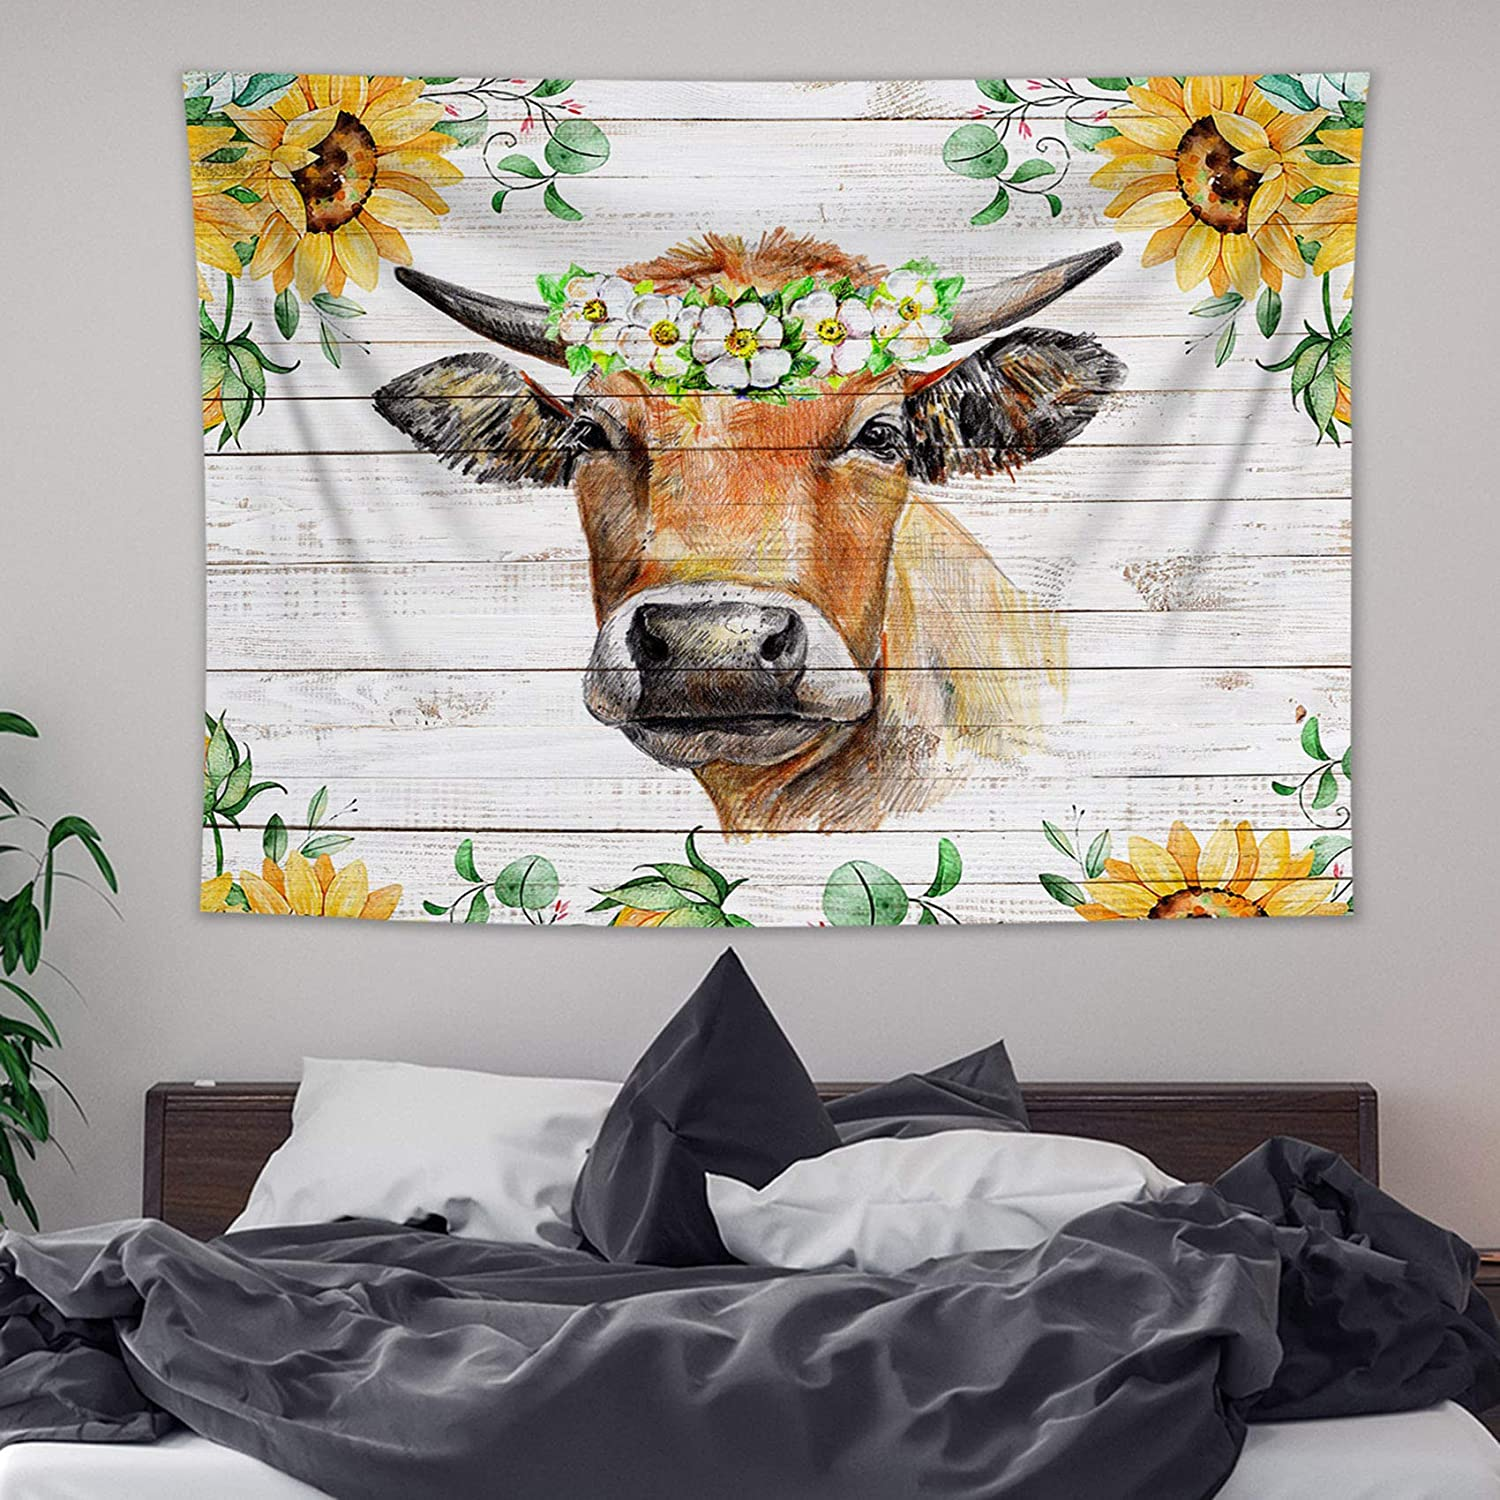 HVEST Farm Animal Cow Decor Tapestry Wall Hanging Funny Animal Cow Cattle and Sunflowers on Vintage Rustic Wood Tapestry for Living Room Bedroom Dorm Wall Hanging Blanket Home Decor, 59x51 inches